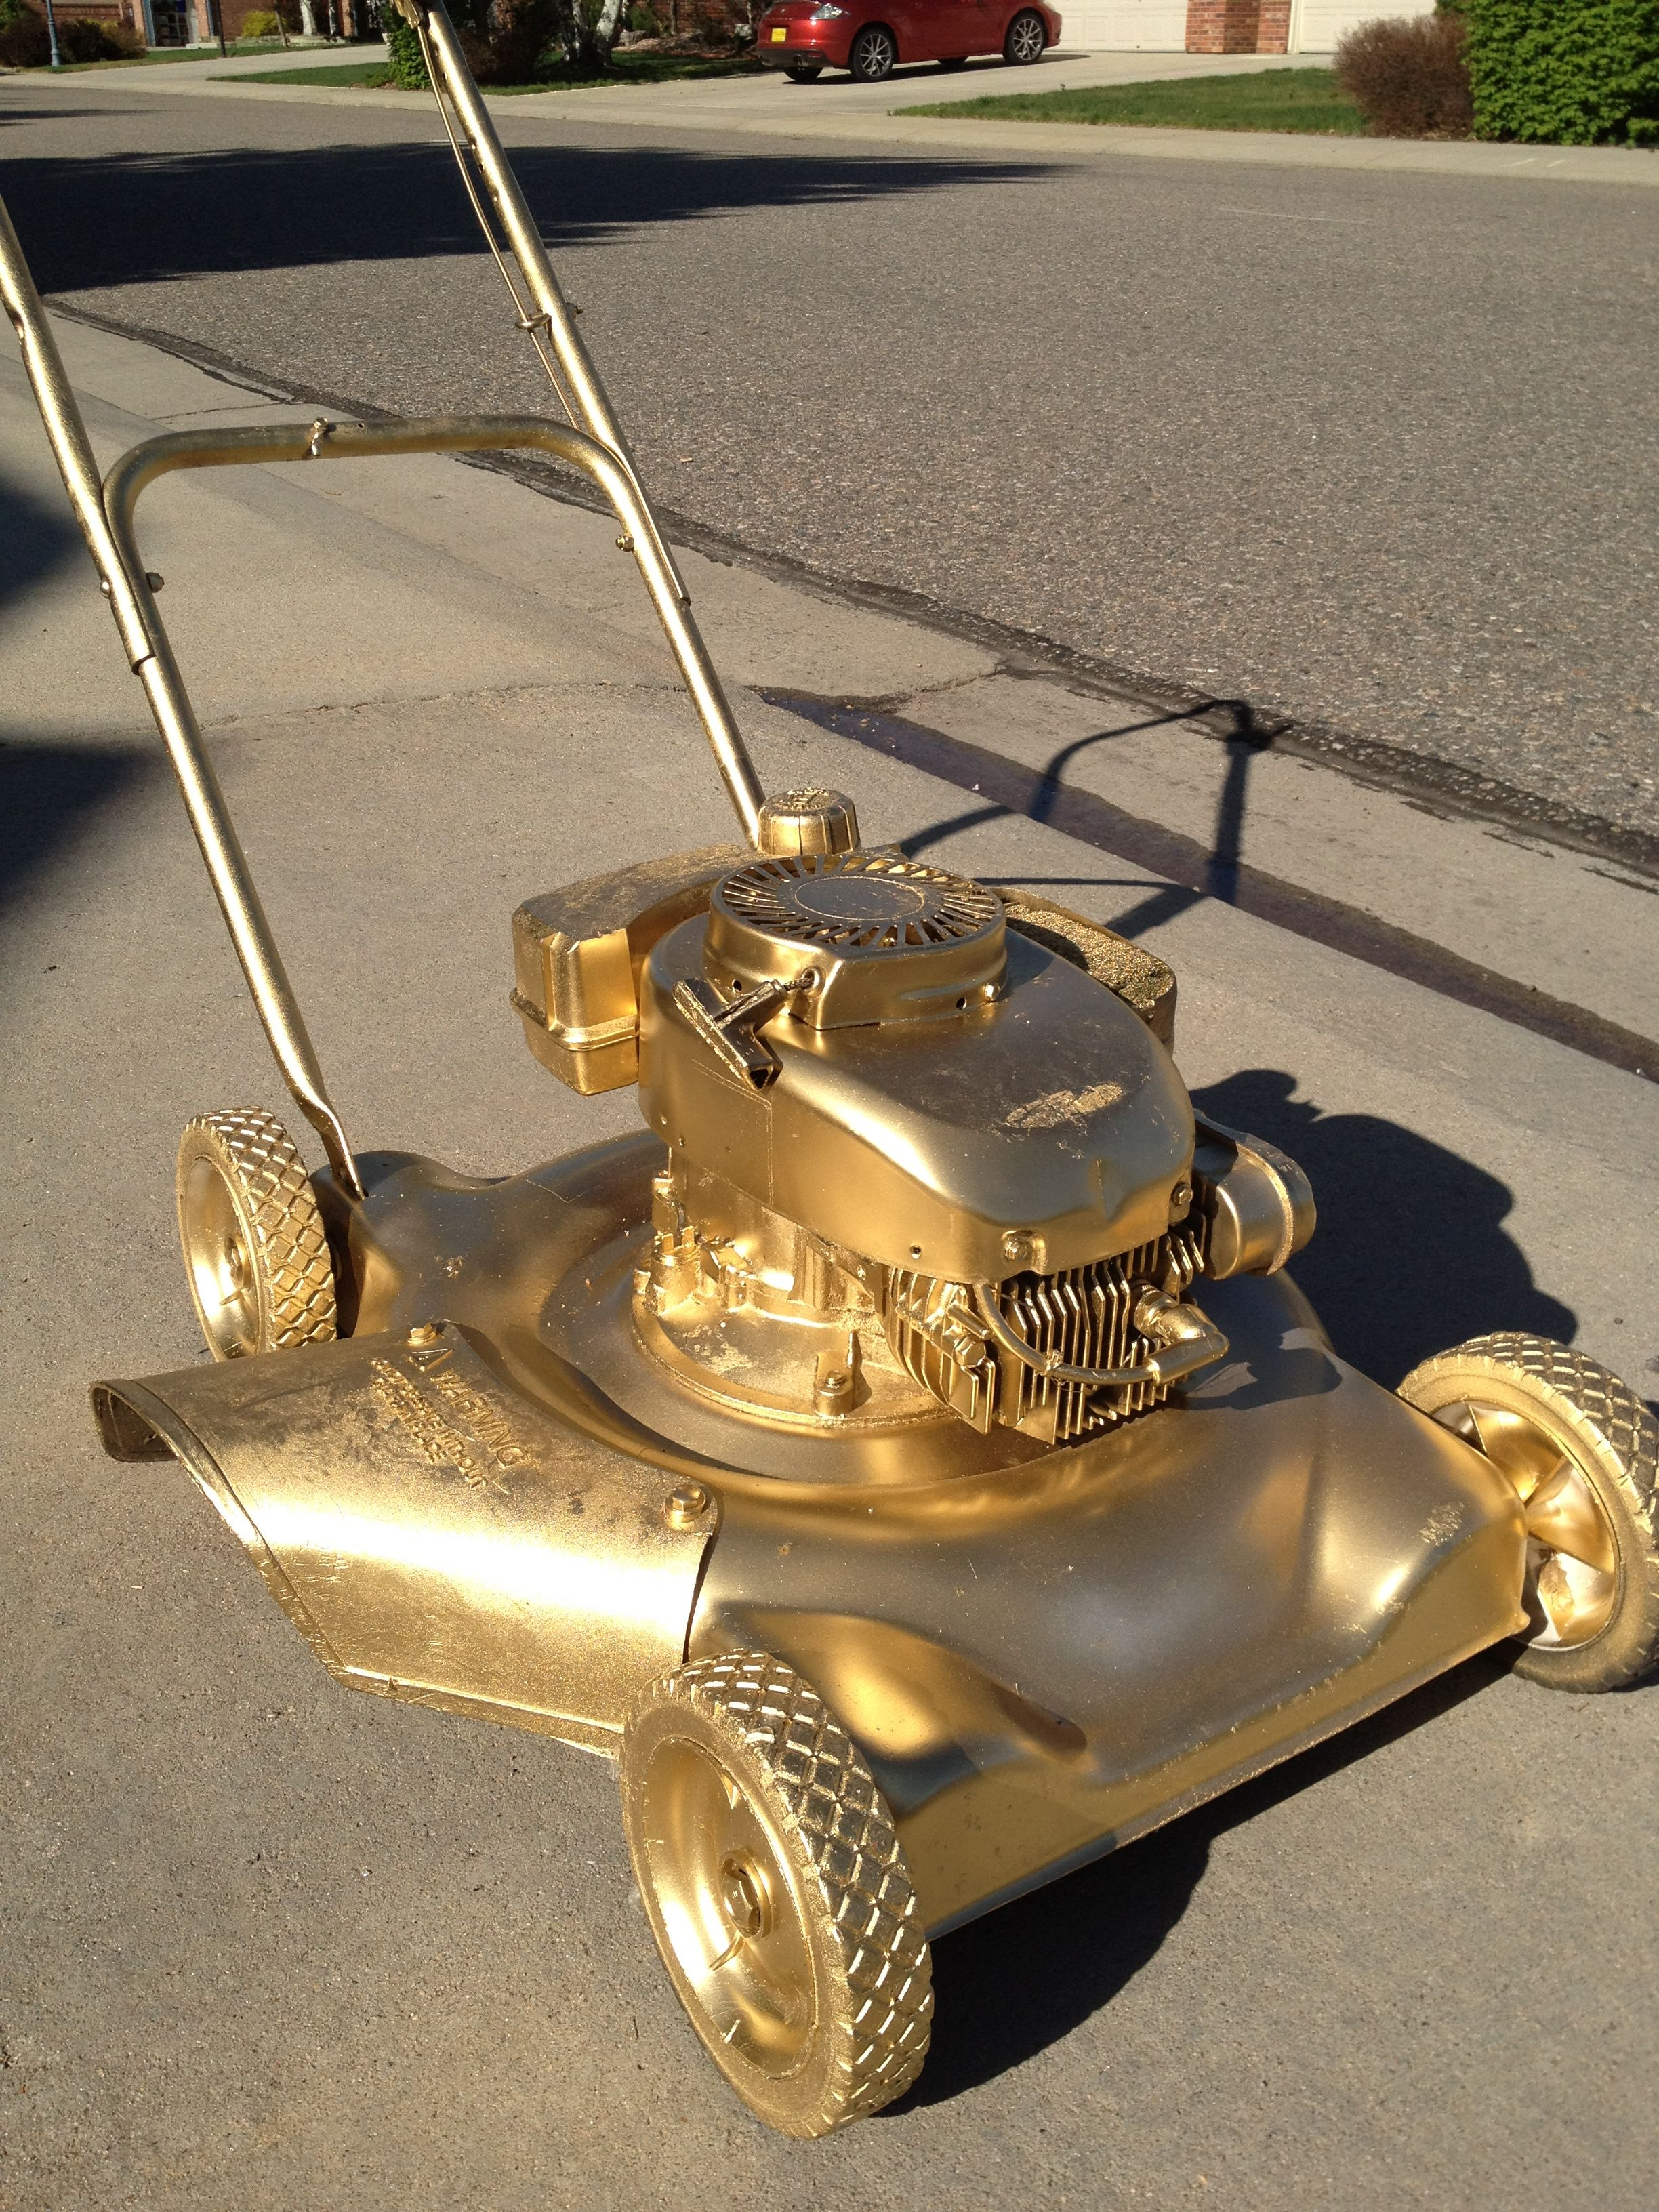 Gold lawn mower. Share photos of your projects with us: http://www.facebook.com/smallengineparts